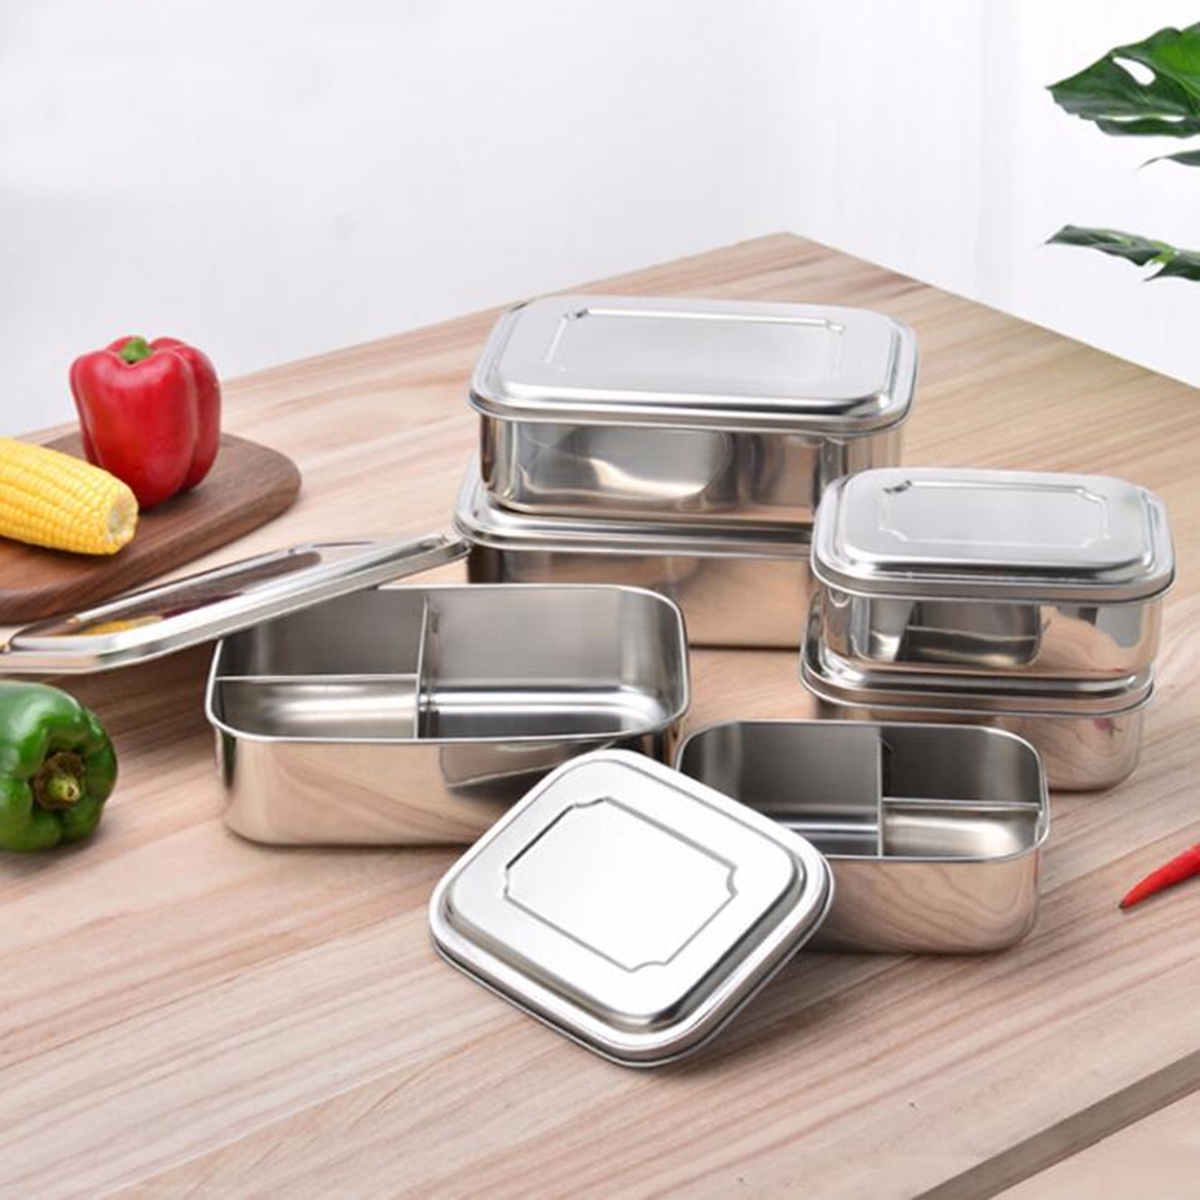 Food Container Stainless Steel Bento Lunch Box With Three Compartments In AU Portable Picnic School Company Food Mess Tin